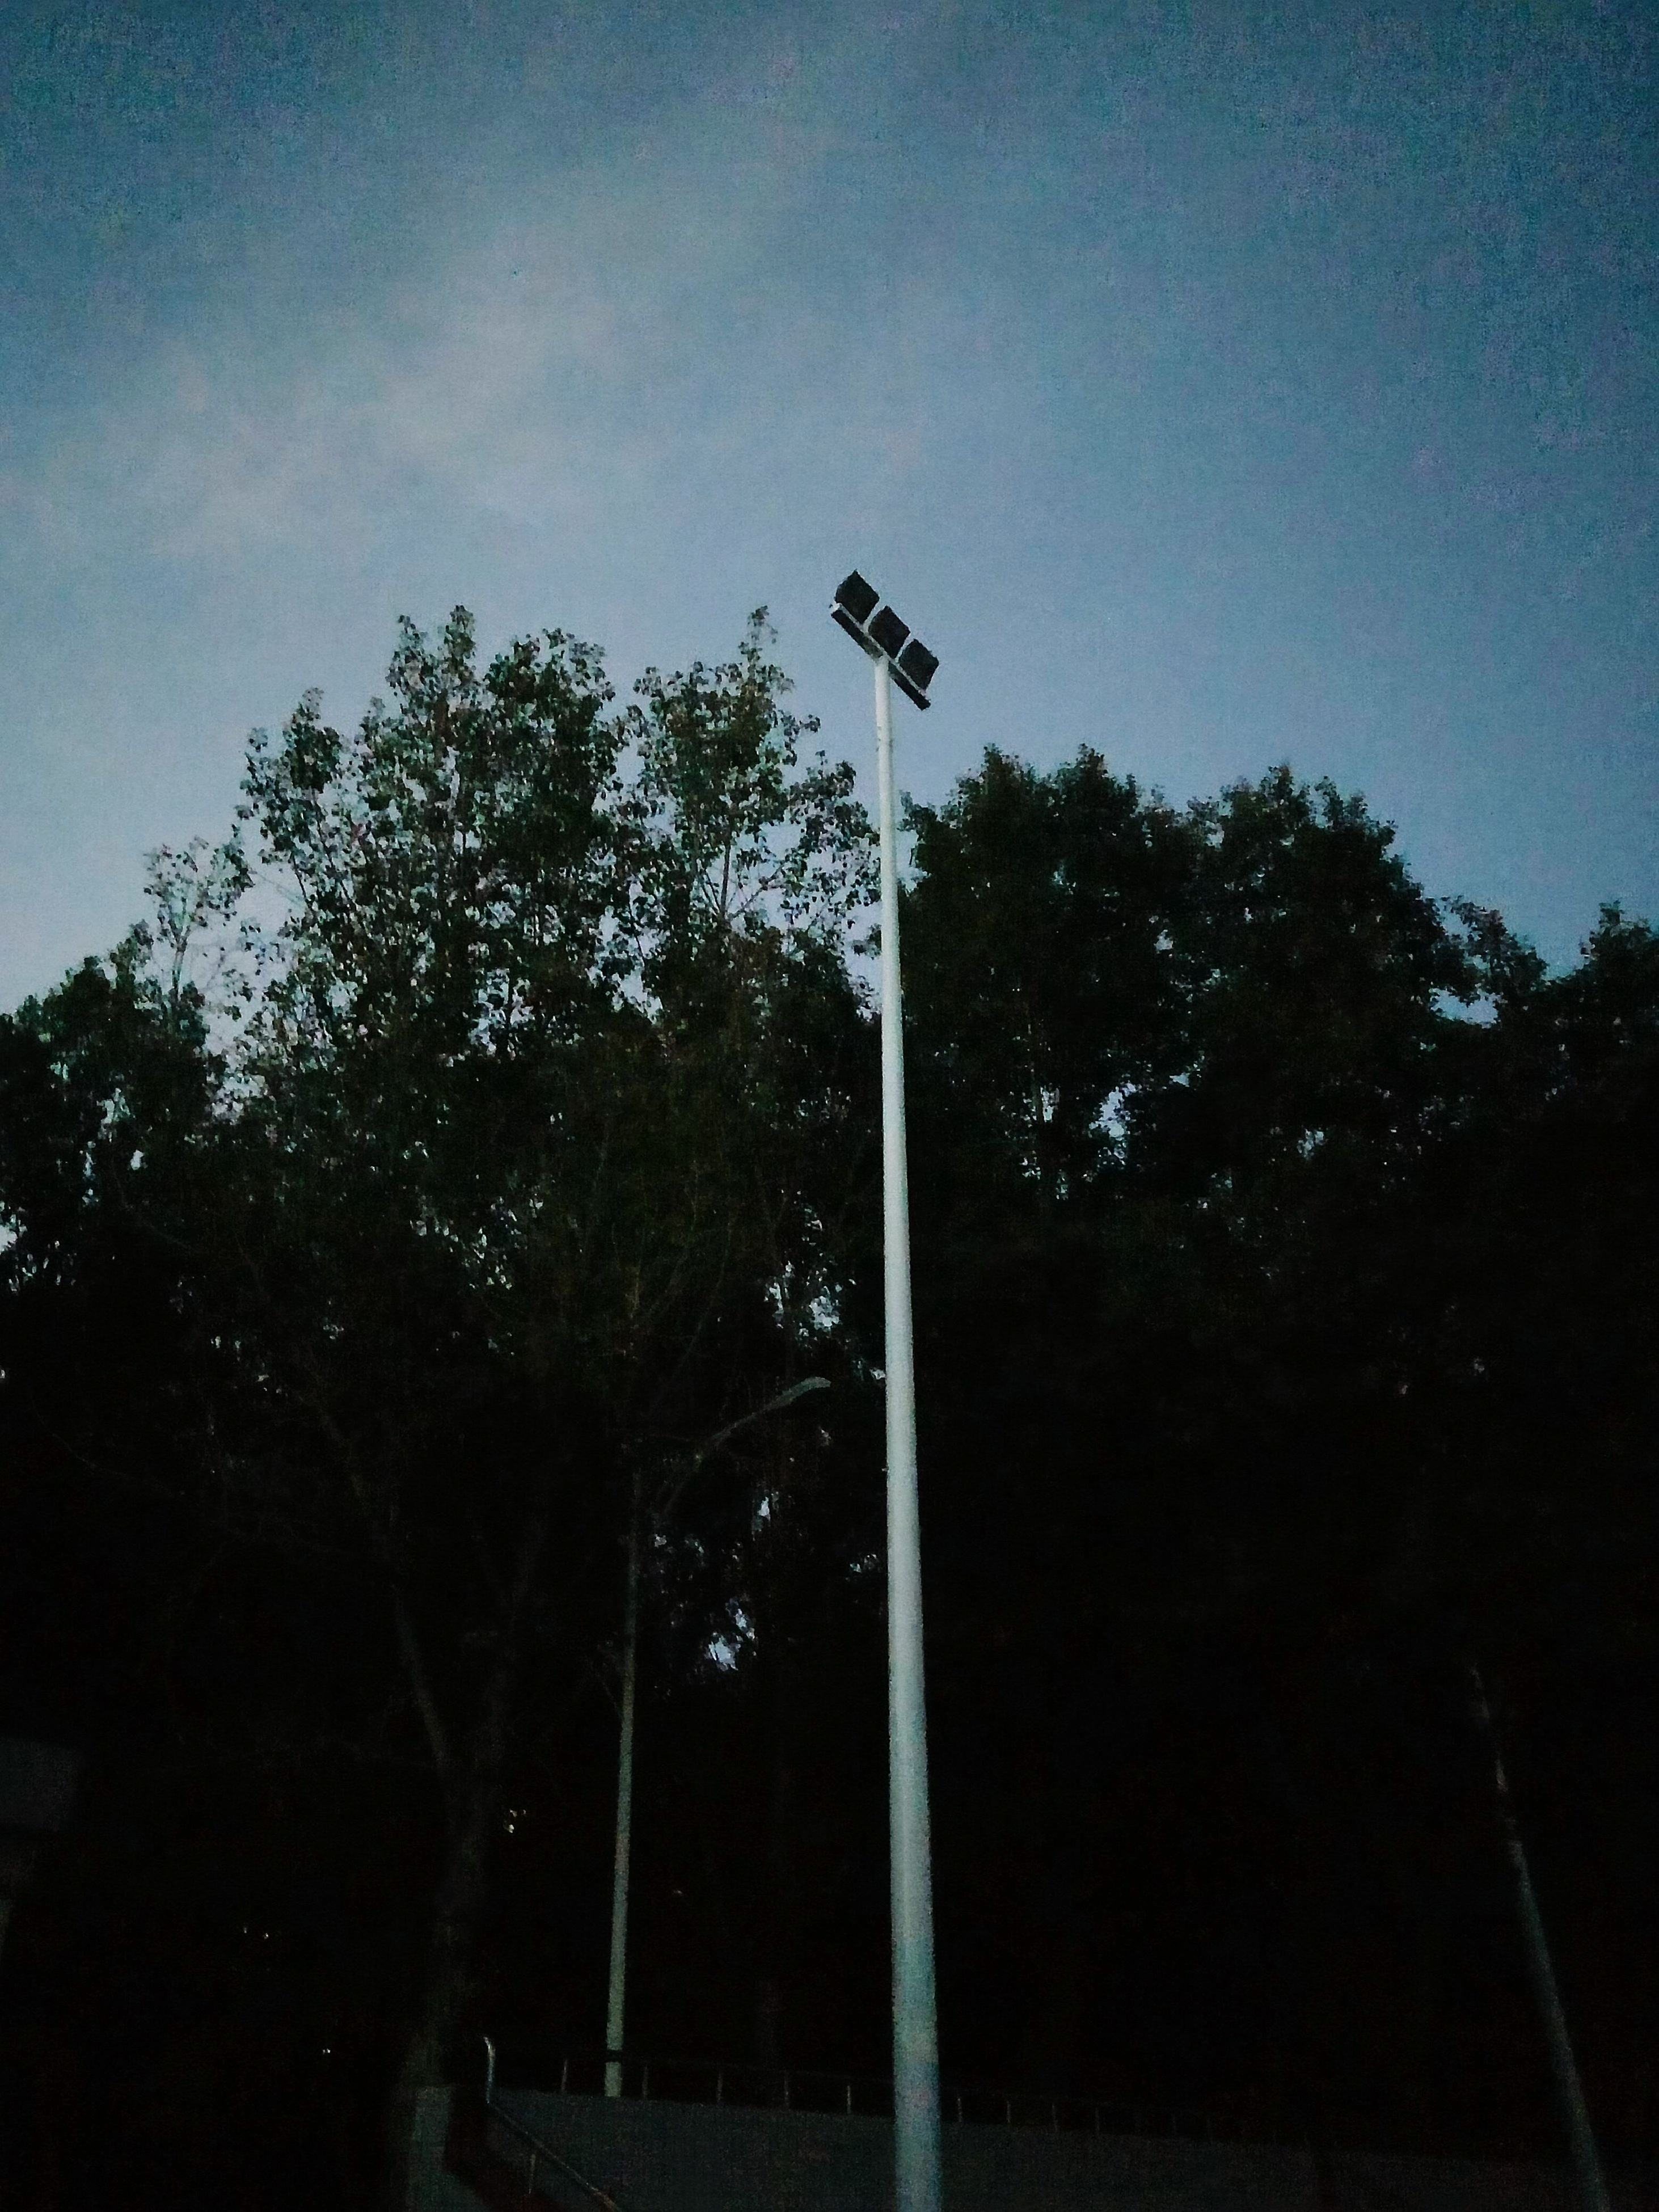 tree, low angle view, silhouette, animal themes, street light, sky, bird, one animal, wildlife, growth, animals in the wild, nature, branch, outdoors, lighting equipment, clear sky, no people, day, sunlight, blue